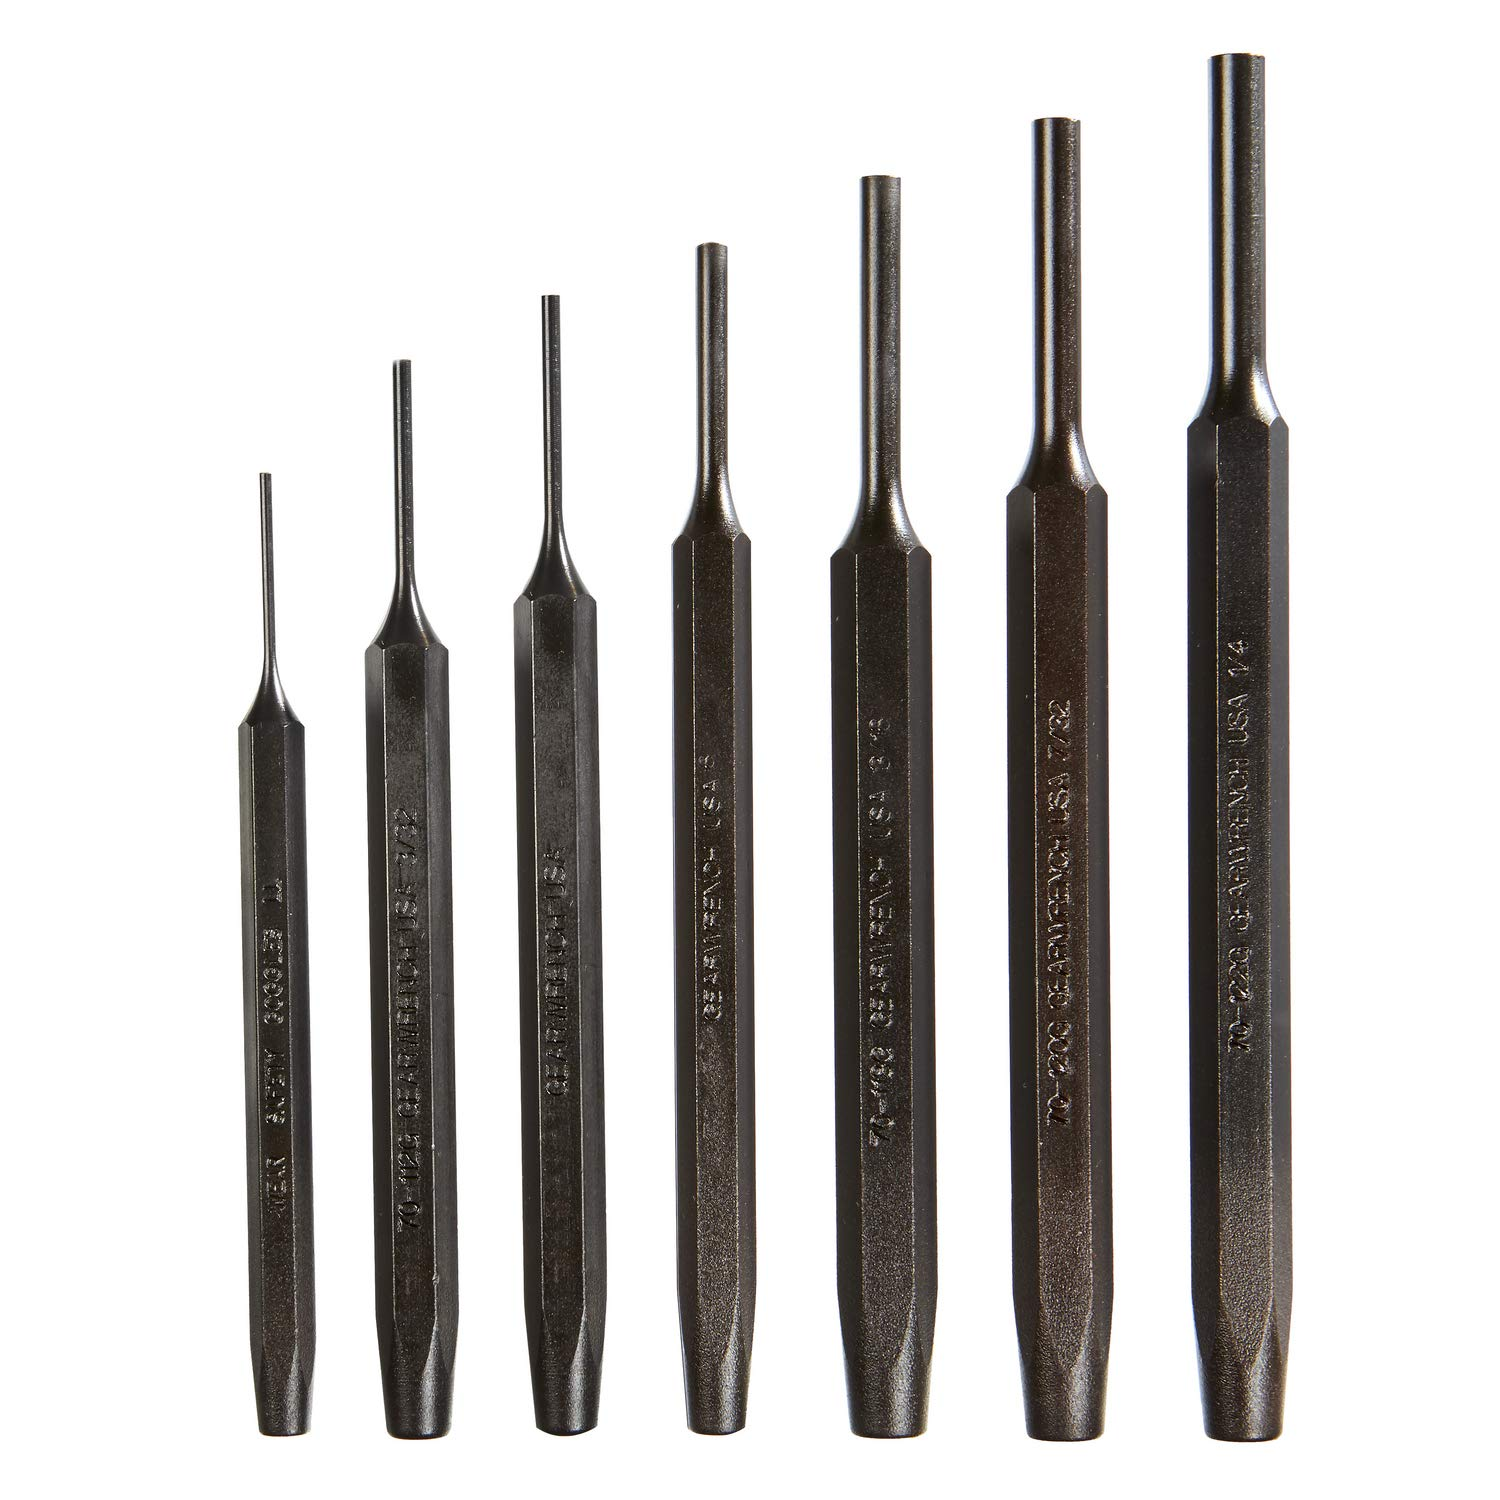 GEARWRENCH 7 Pc. Tool Steel Pin Punch Set - 70-553G by GearWrench